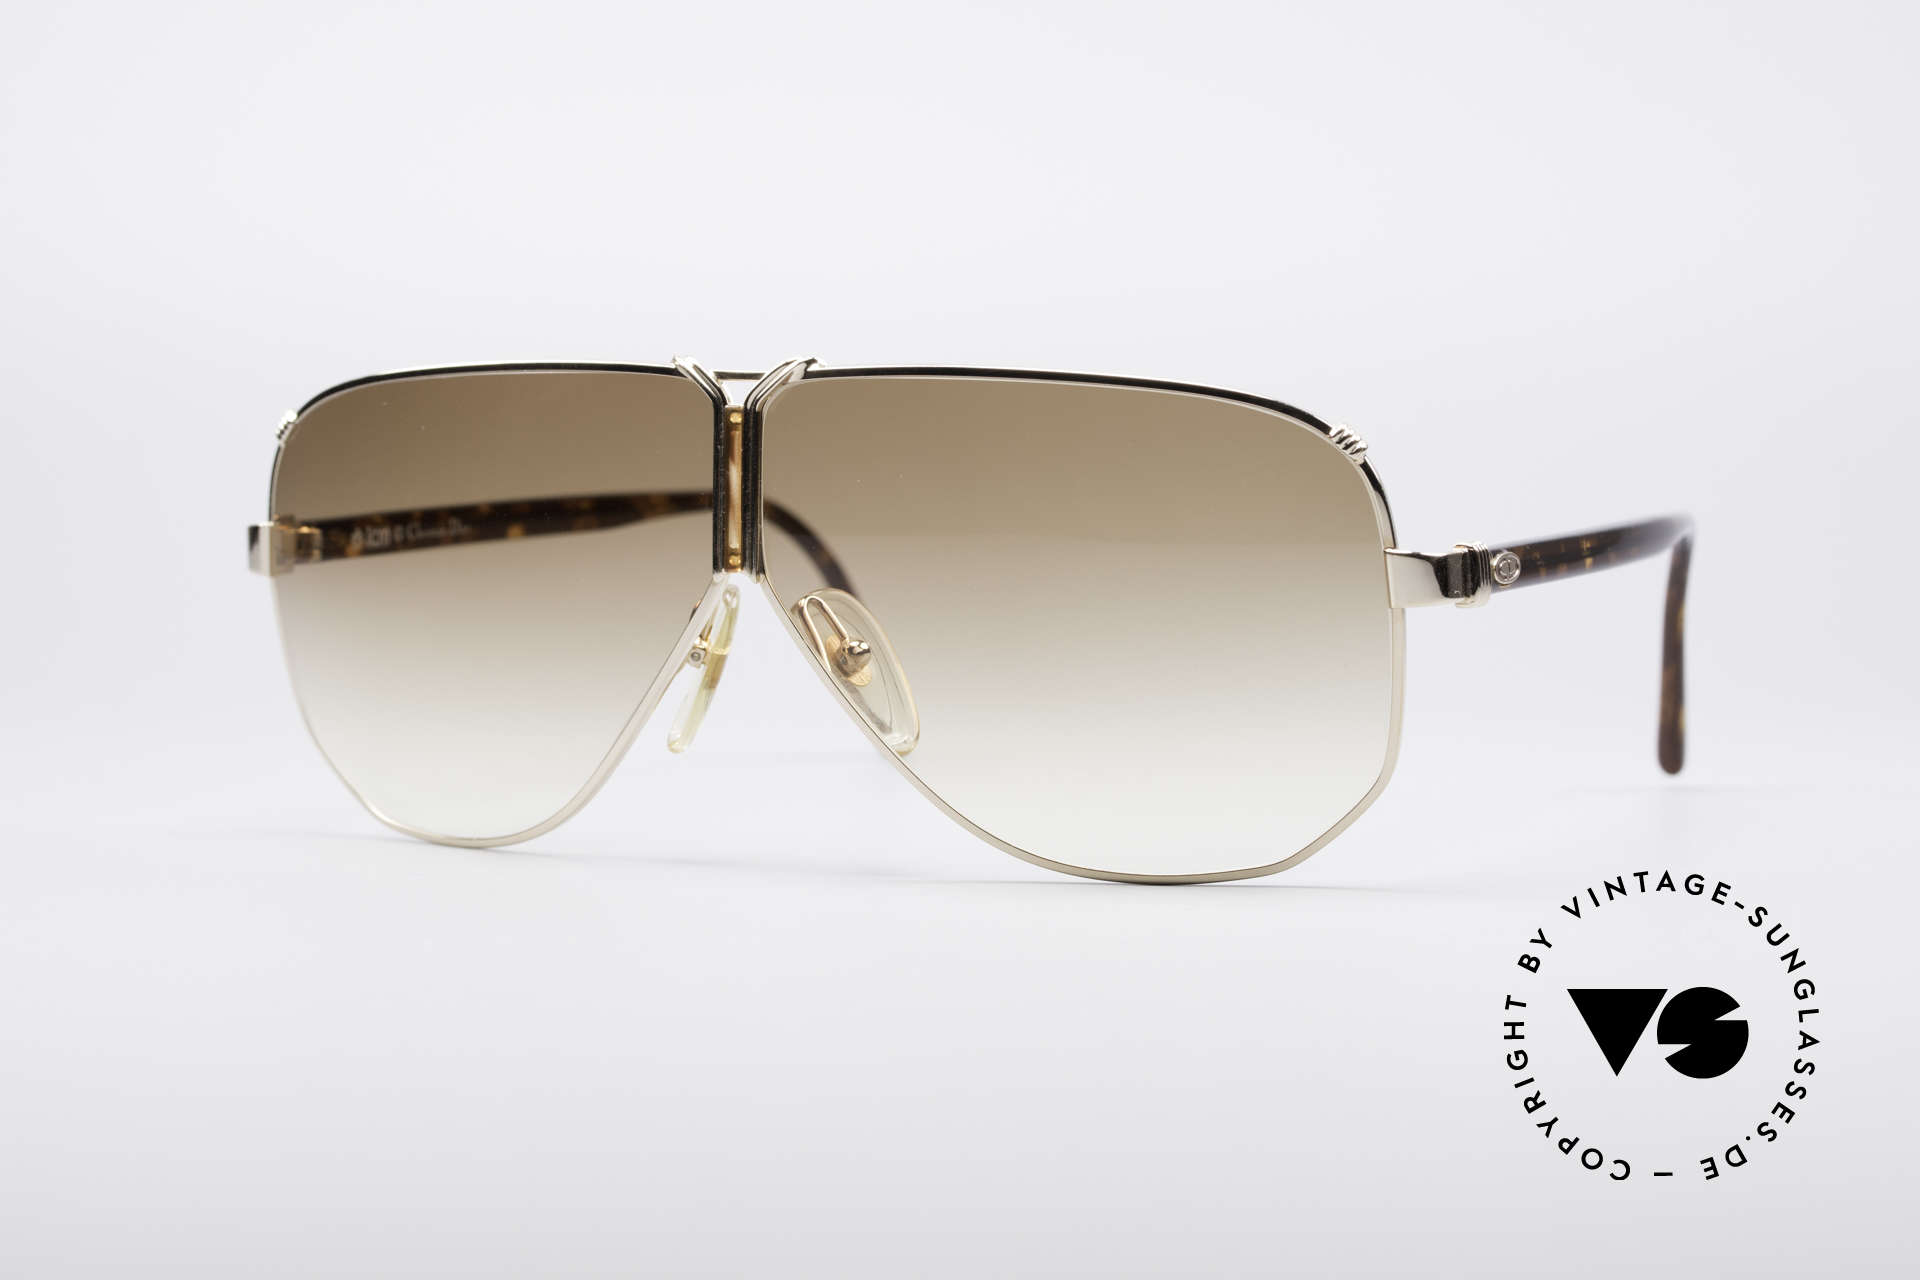 Christian Dior 2502 Panorama View Shades XXL, vintage 90's Christian Dior sunglasses; XL-oversize, Made for Men